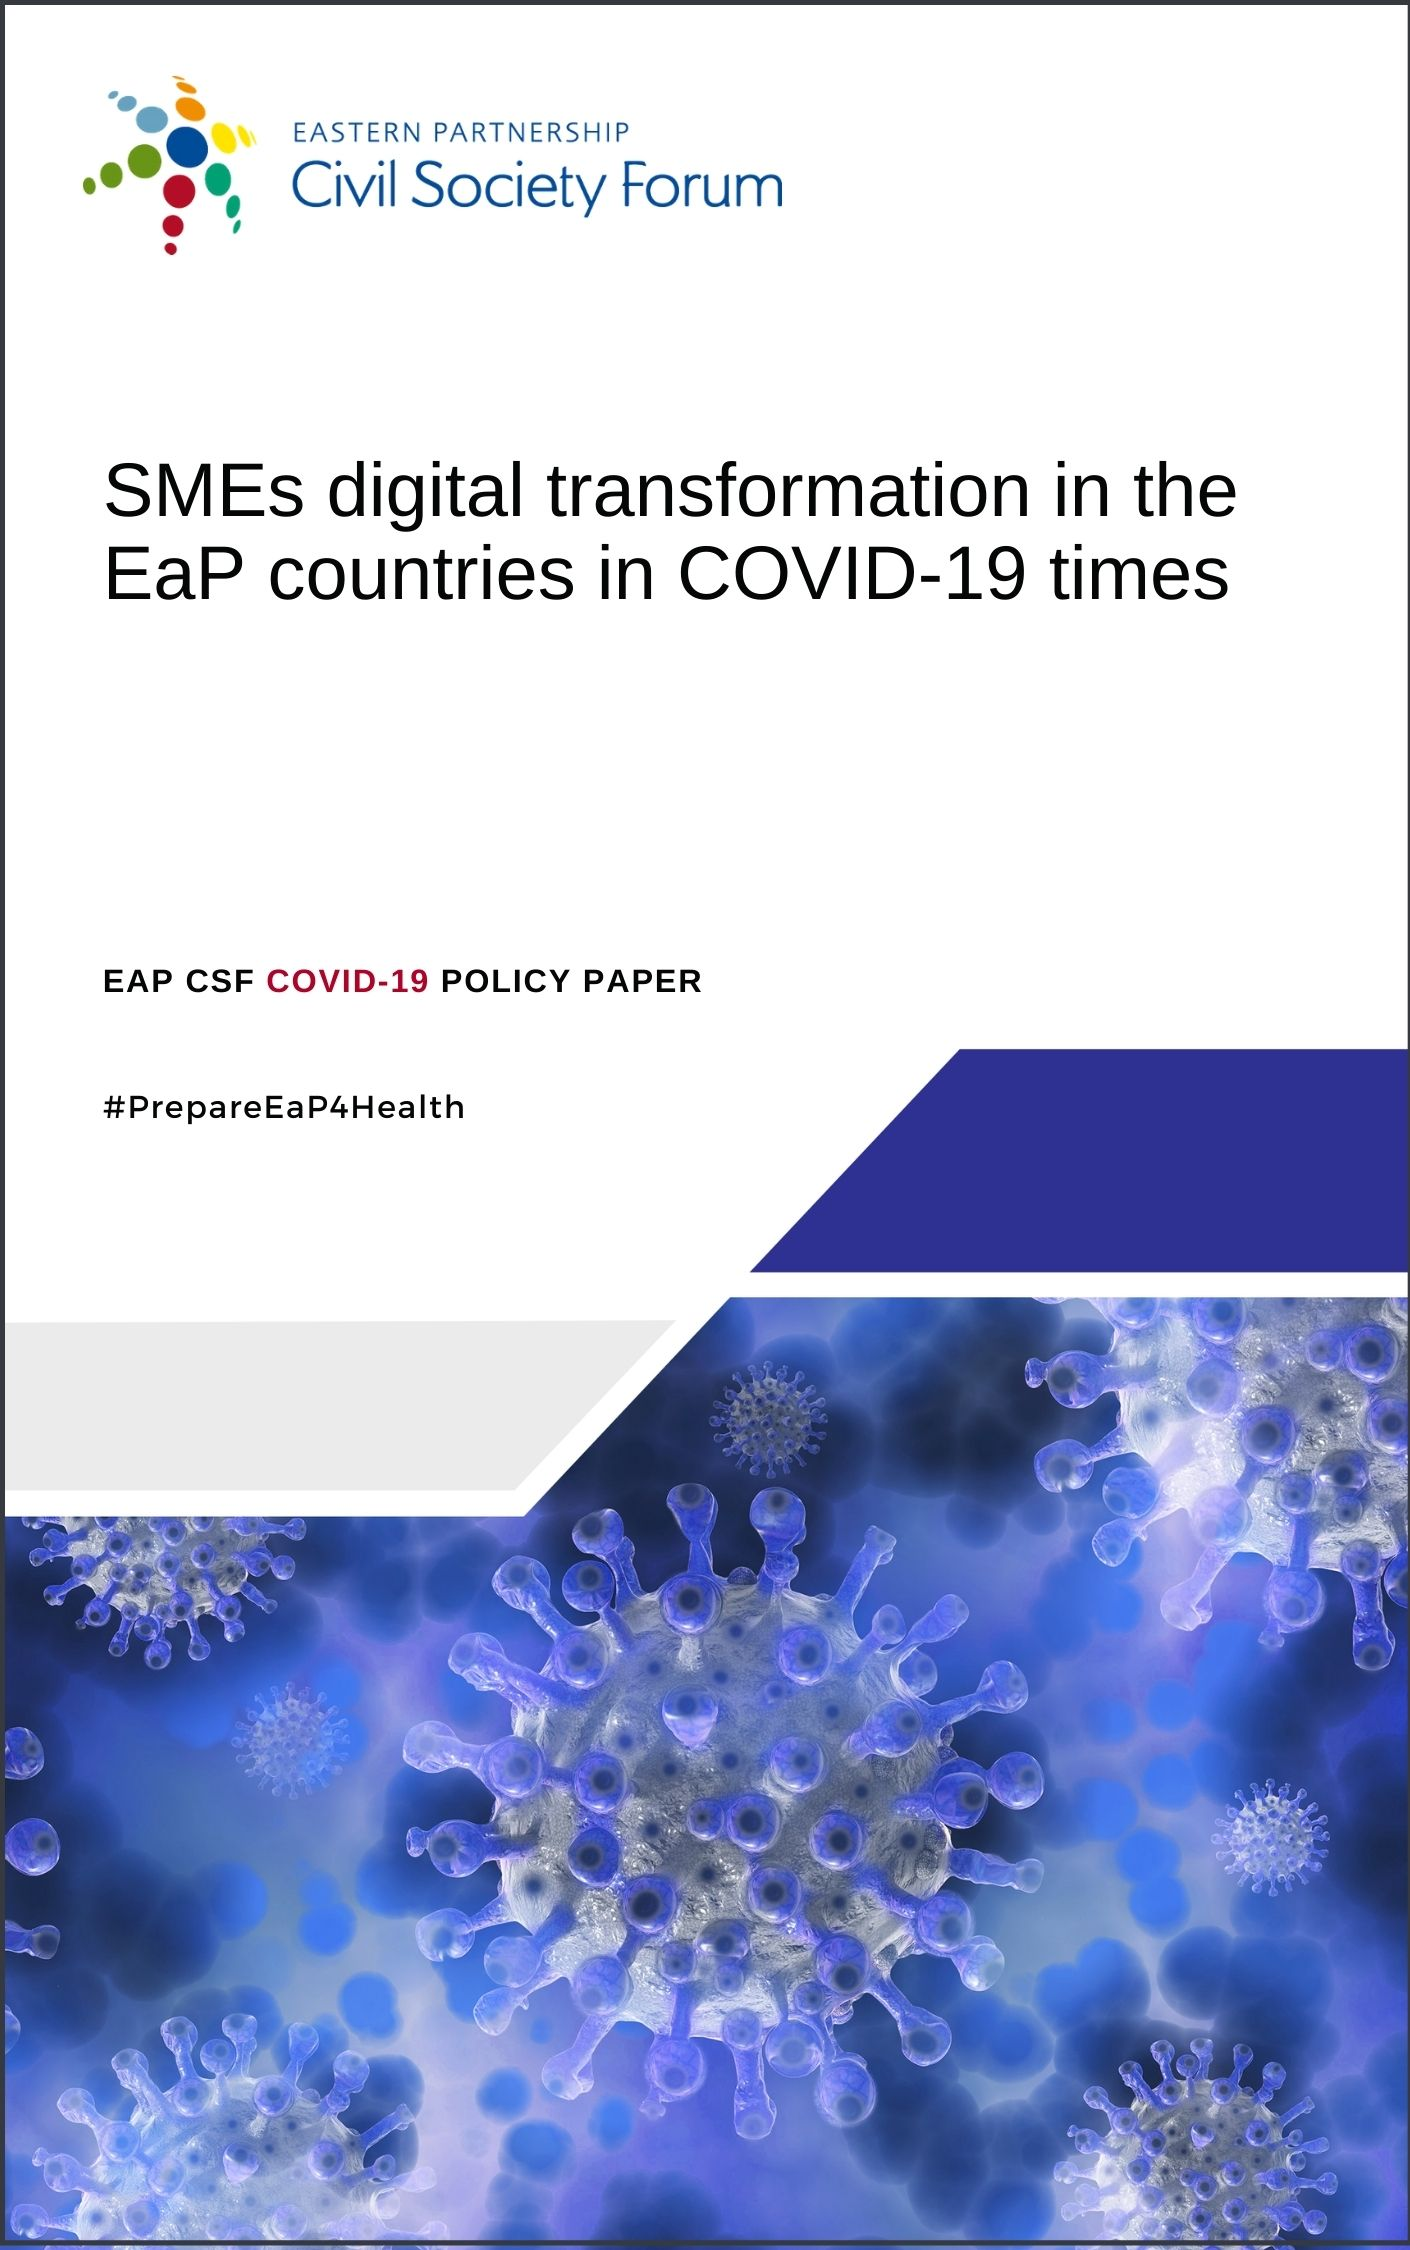 EaP CSF COVID-19 Policy Paper on SMEs digital transformation in COVID-19 times